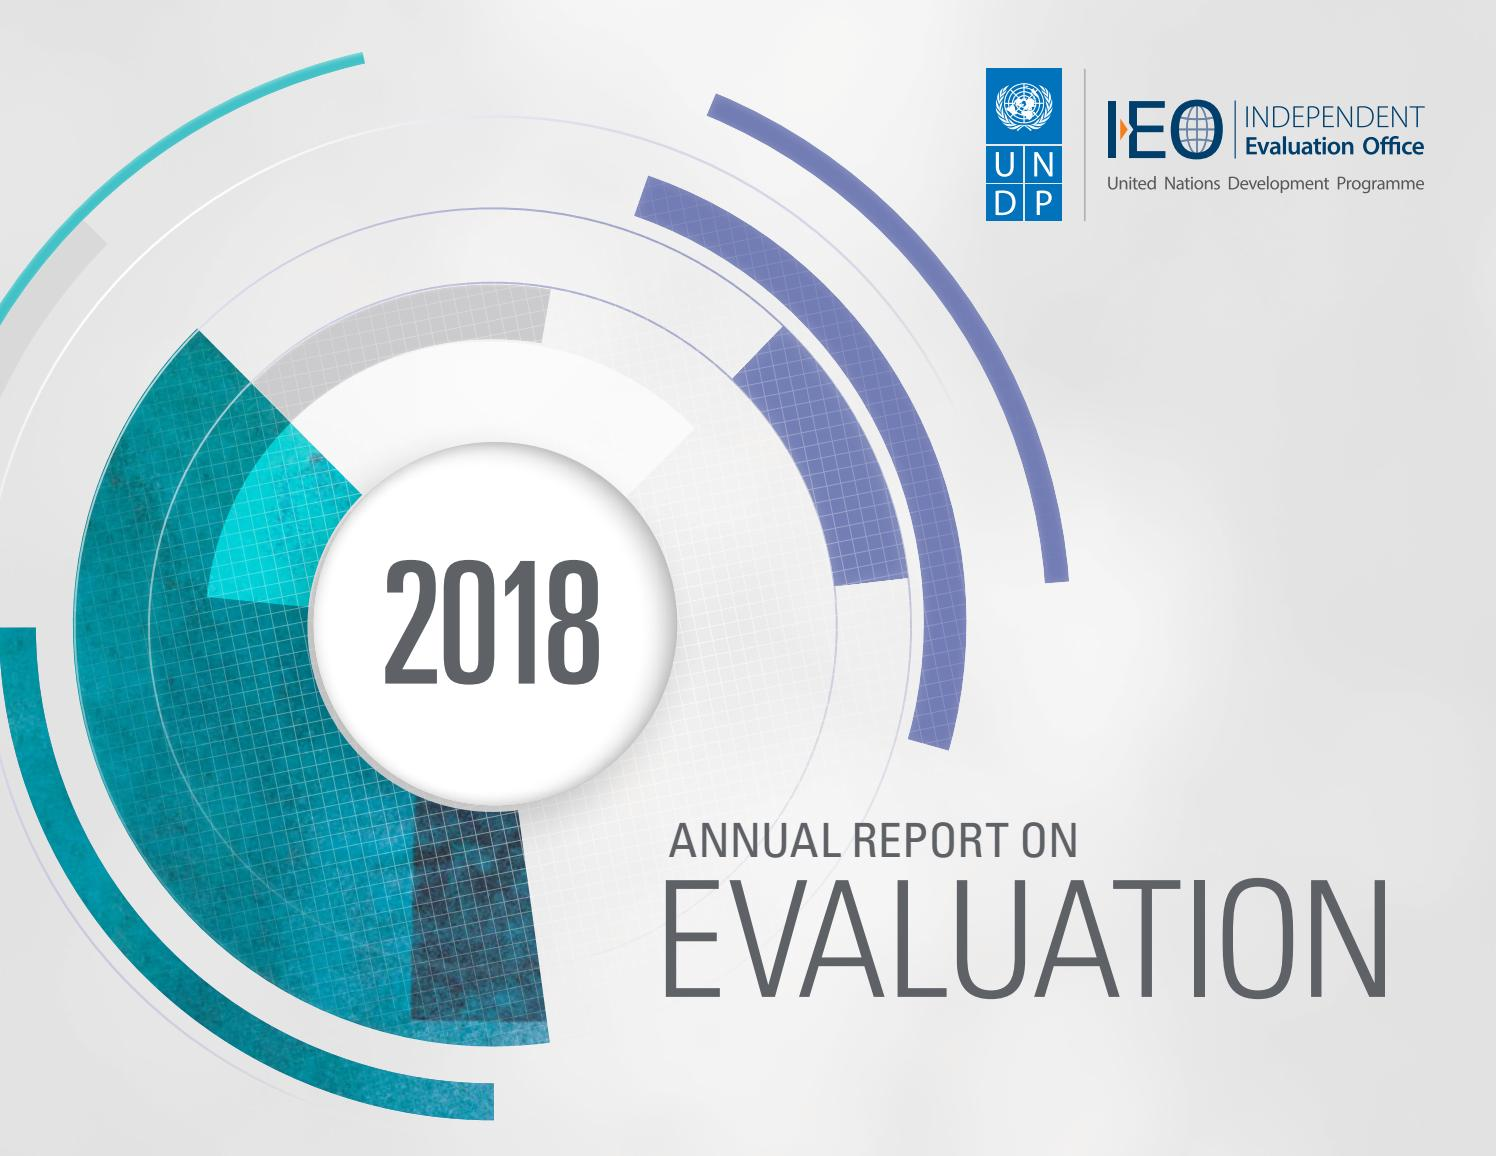 Annual Report on Evaluation 2018 by UNDP Independent